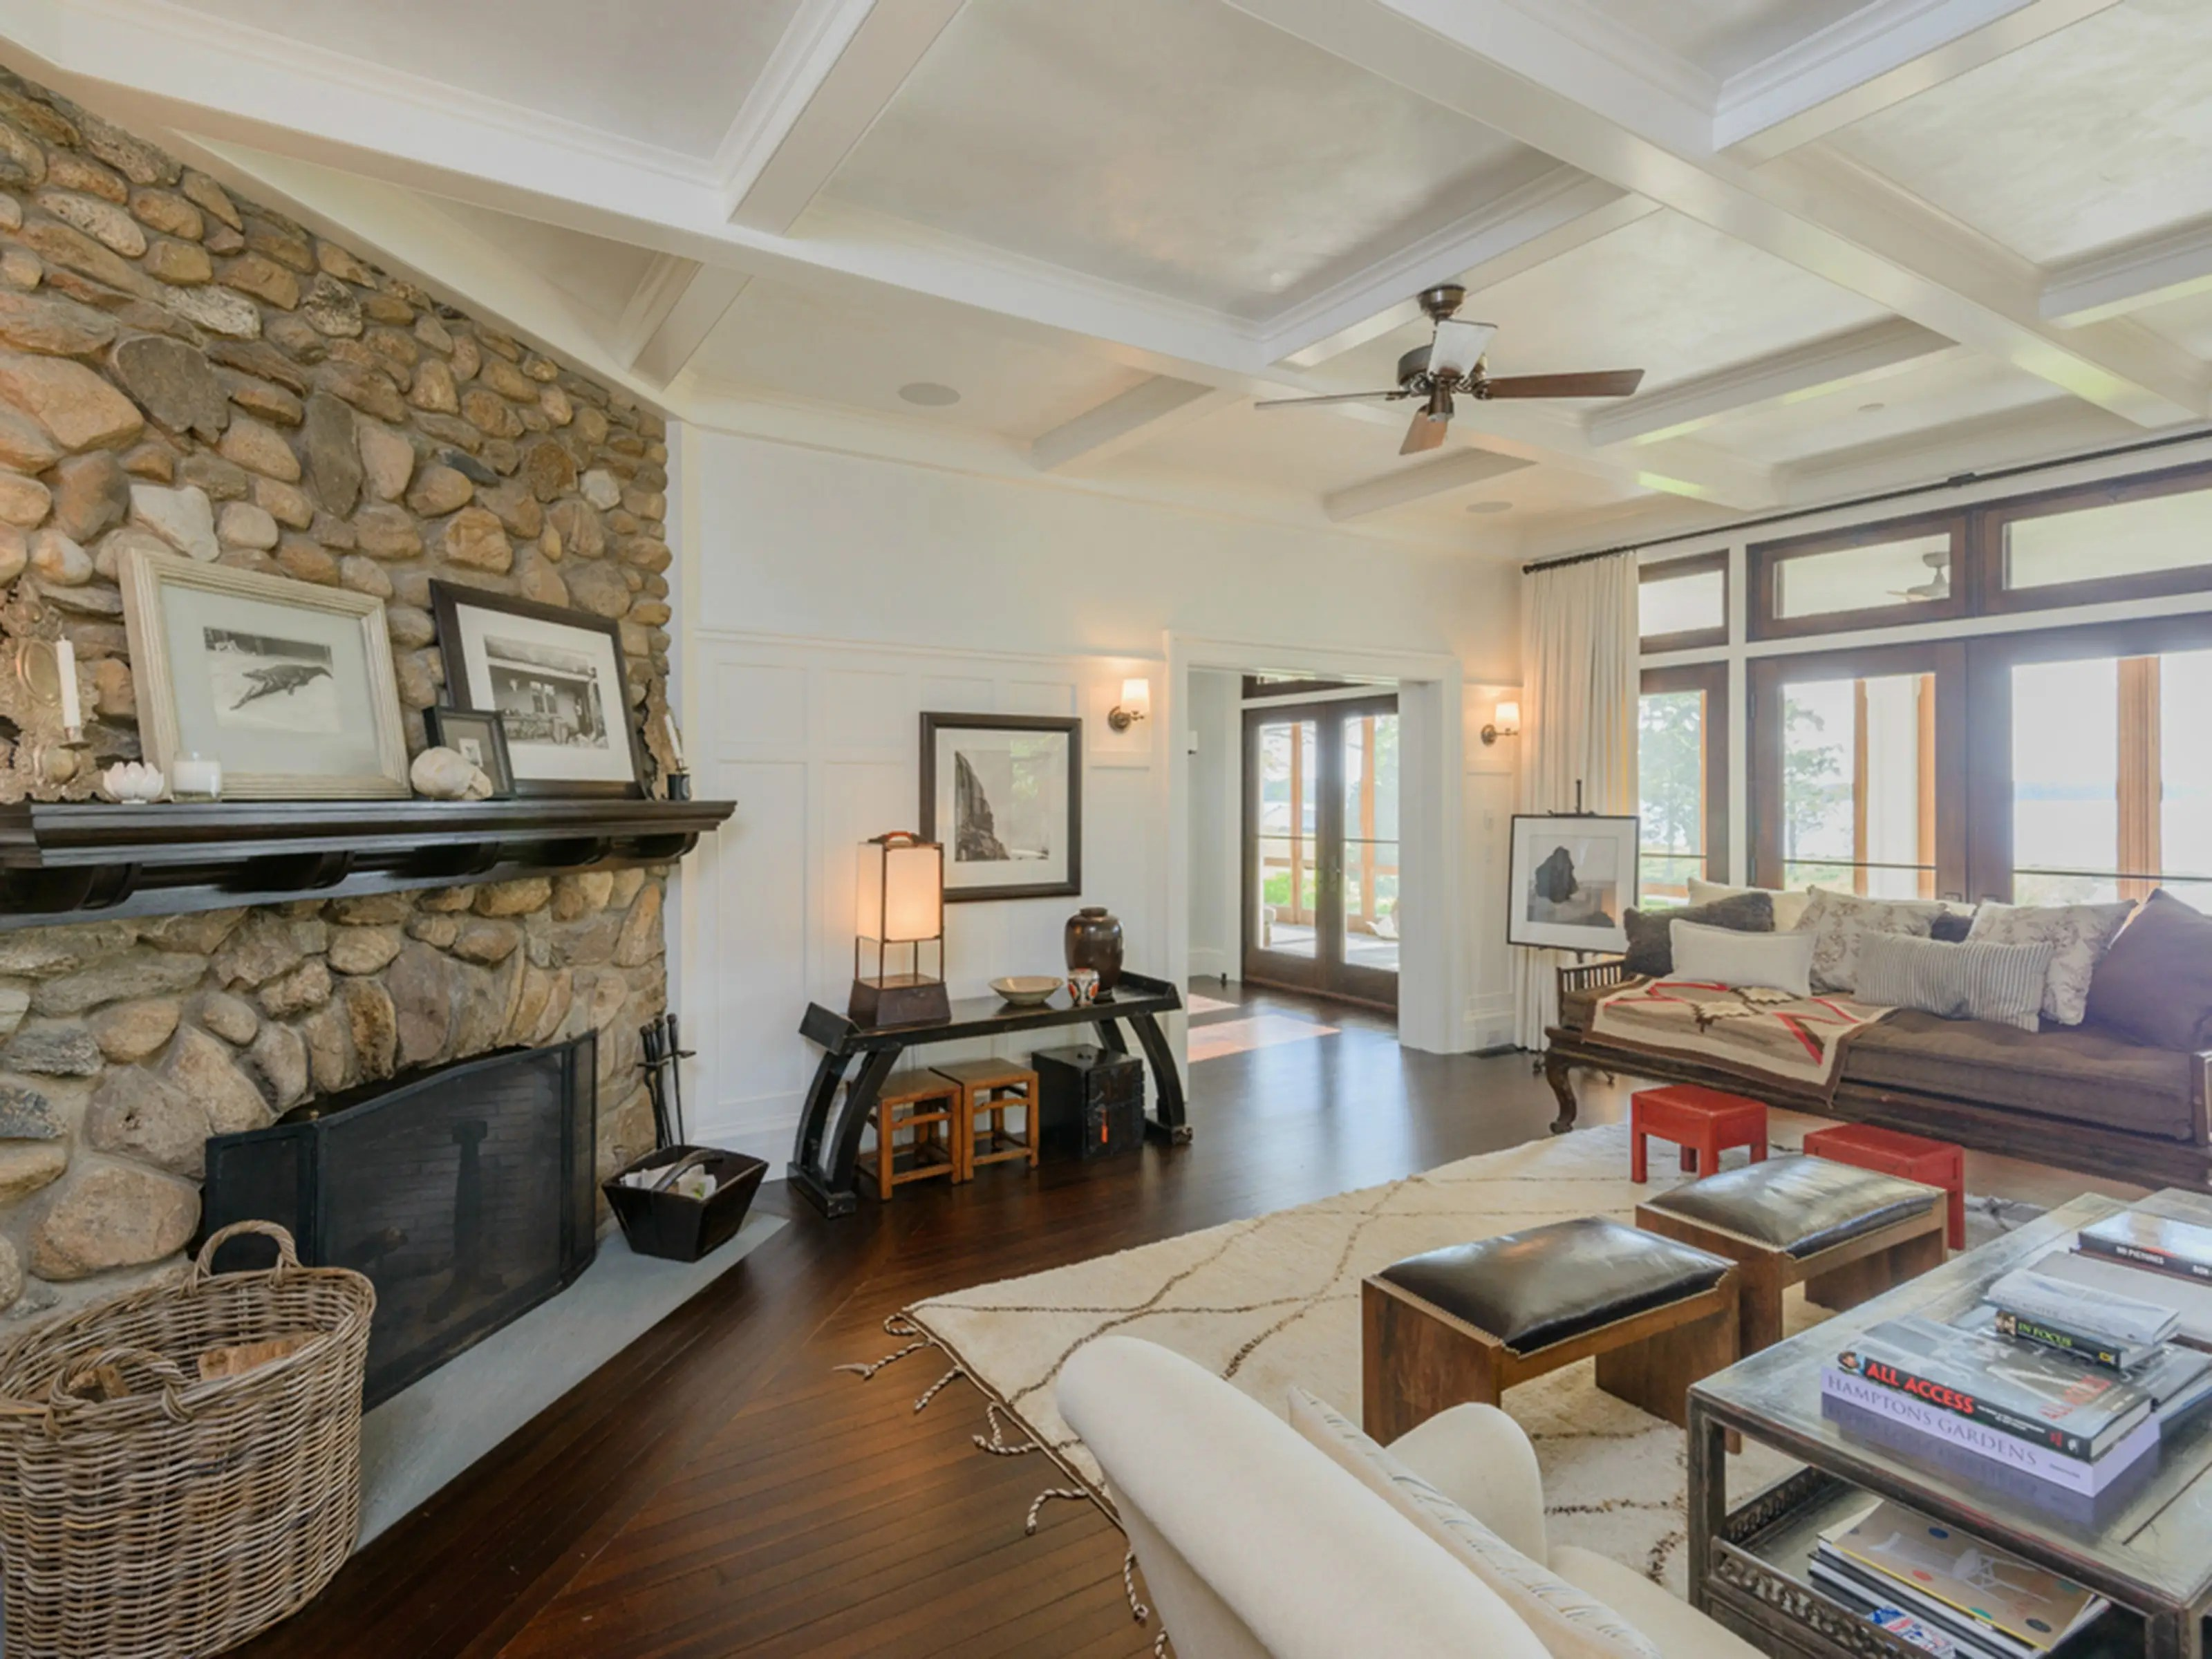 Inside, the home has over 12,000 square feet of space inside with six fireplaces.